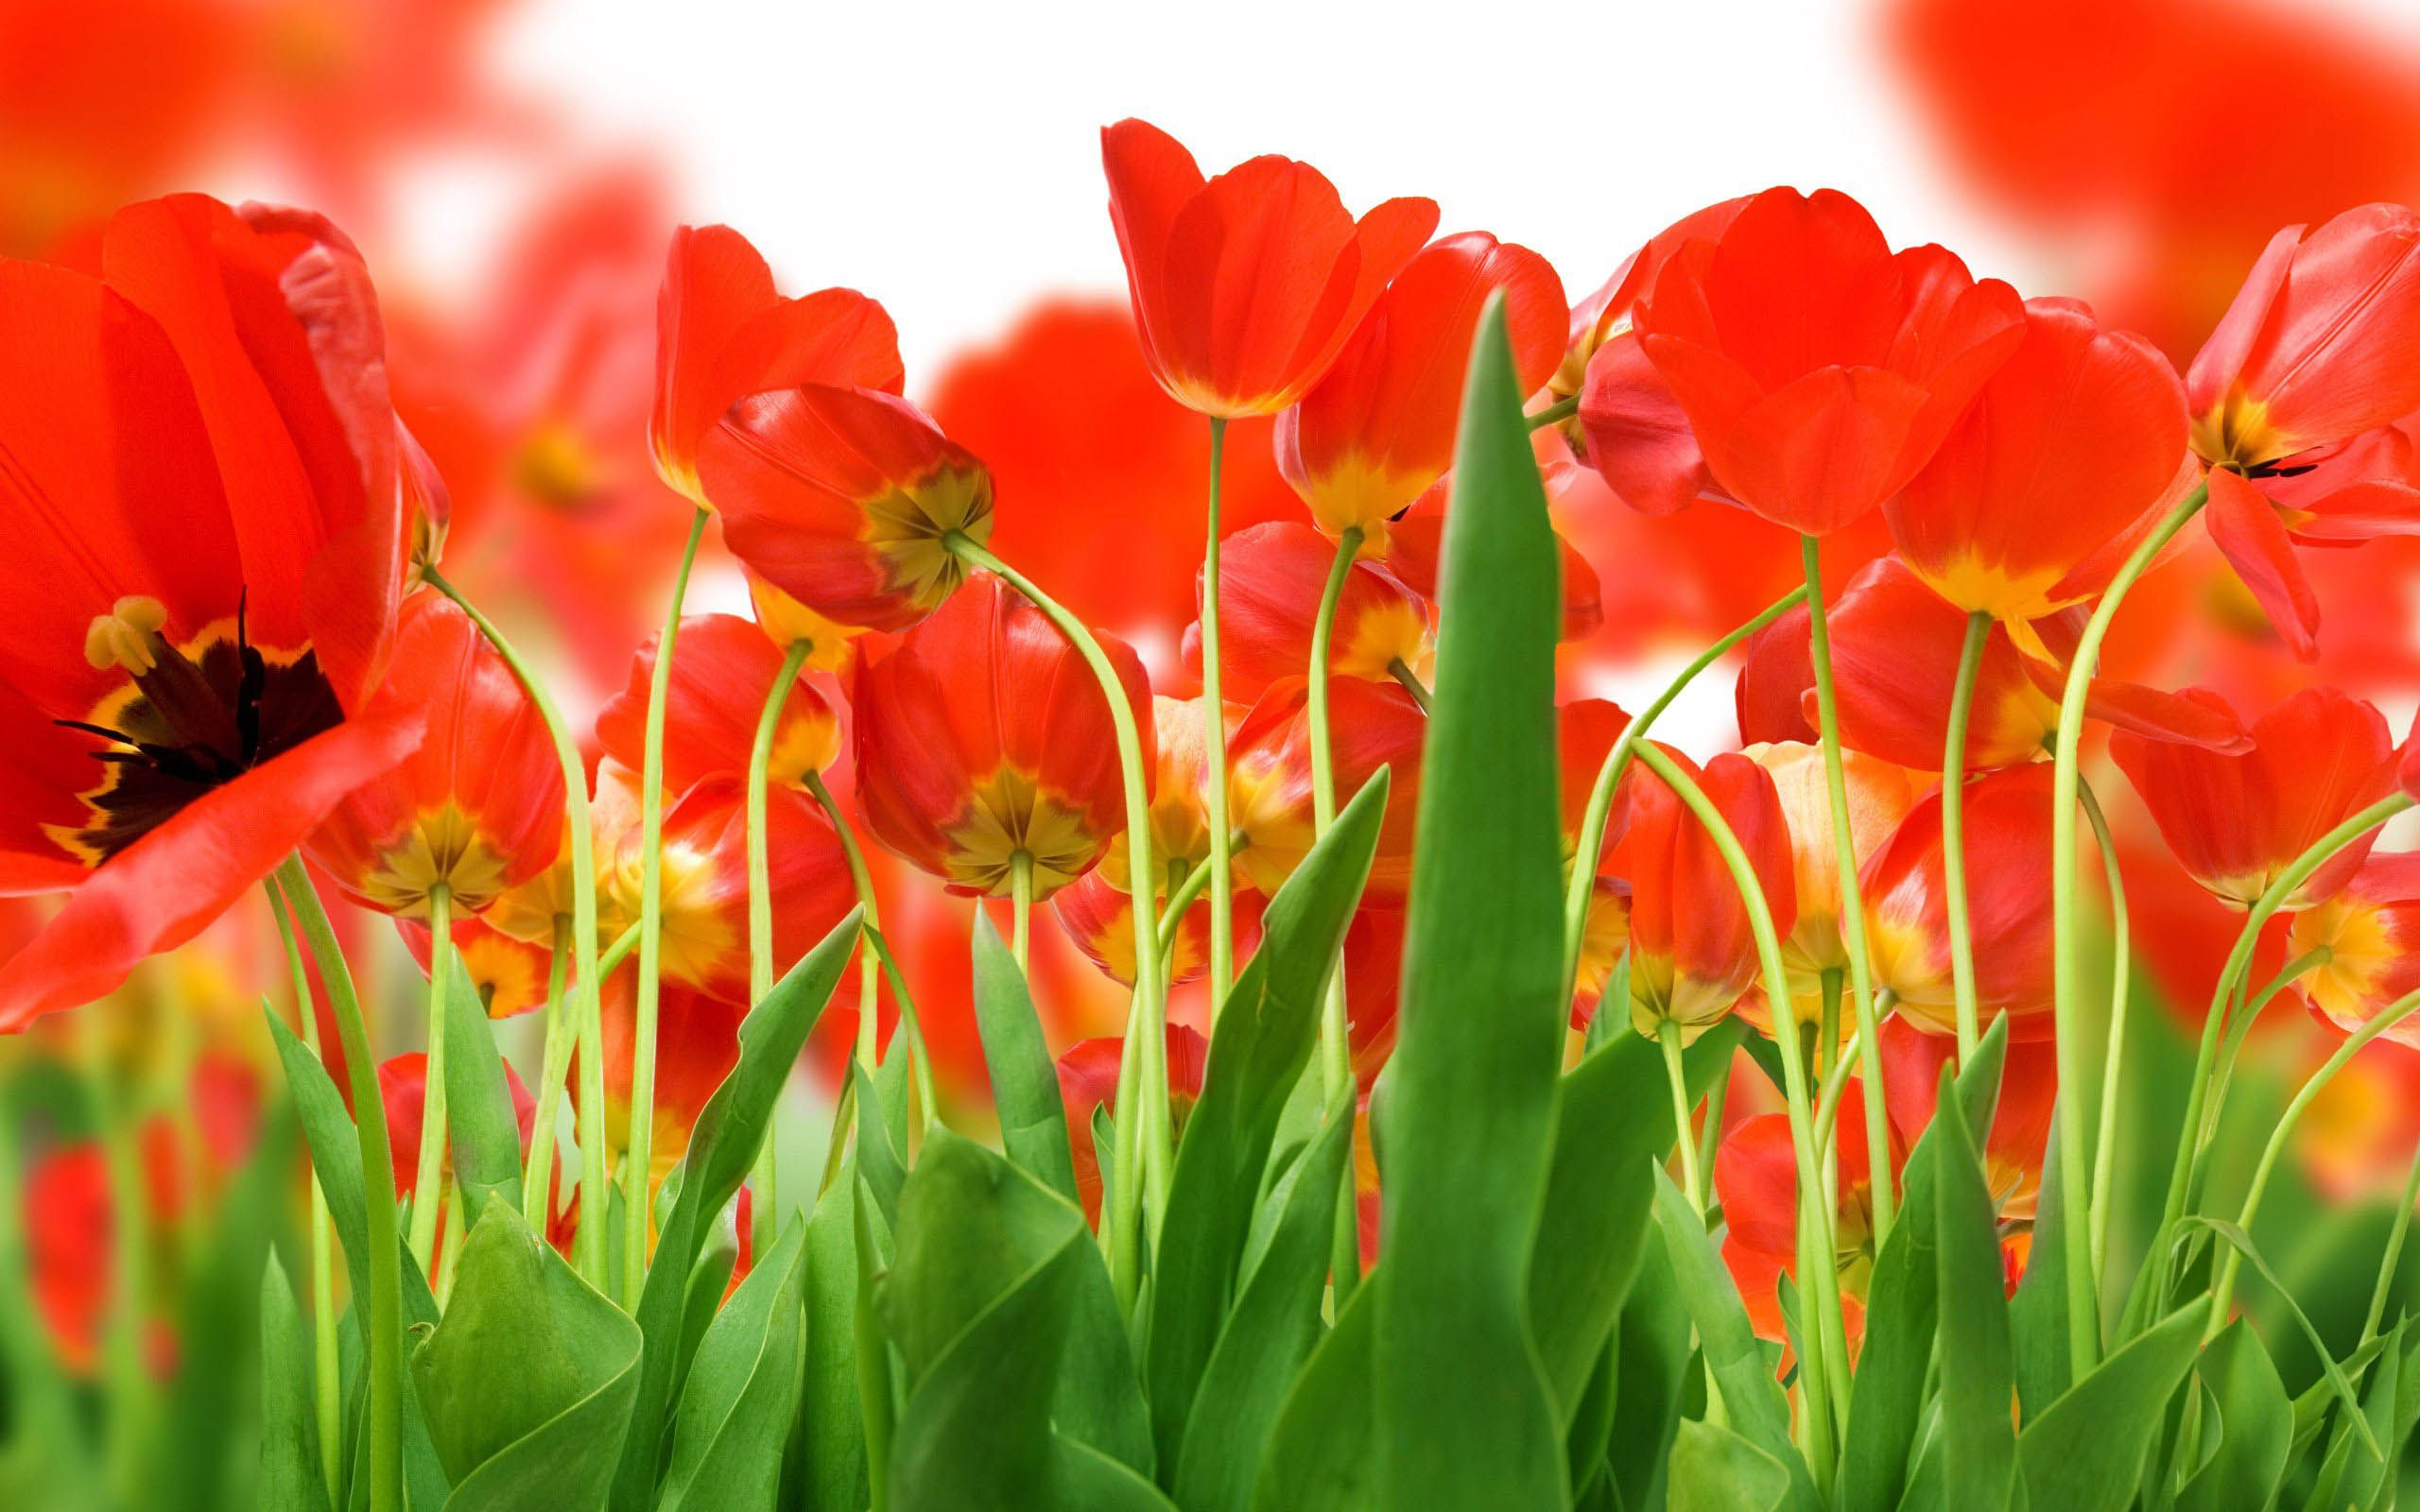 Awesome Flowers Wallpaper Desktop Background Full Screen | Download ...